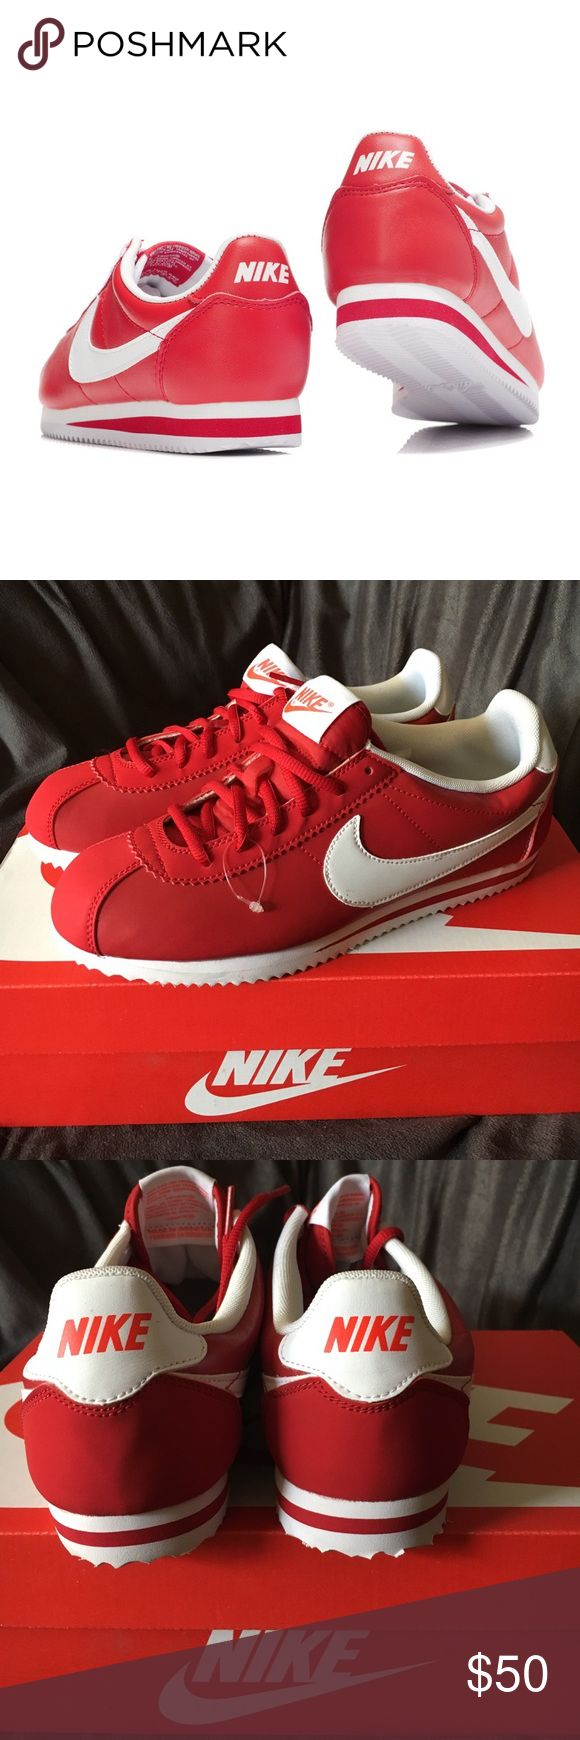 Red leather Nike Cortez Please note that these are big kid sizes. 7Y which translate to 8-8.5 women's! BNWOT . So cute that i'm tempted to keep these! Nike Shoes Sneakers